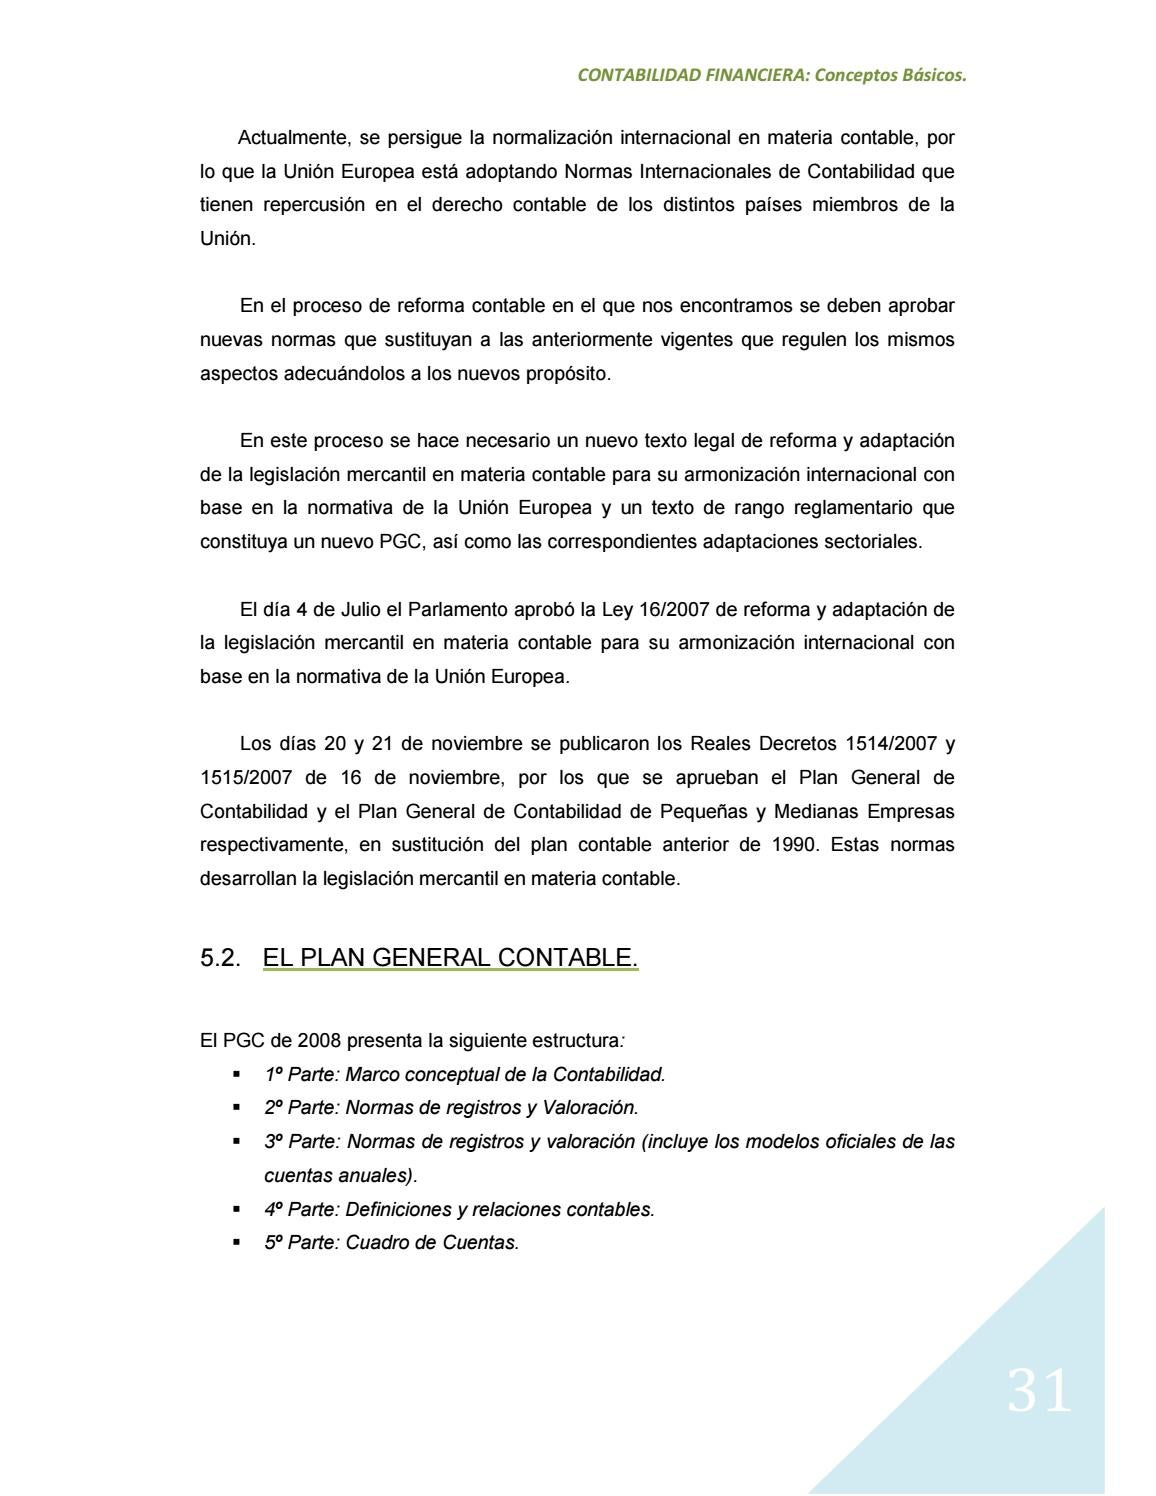 Cuadro Plan General Contable Manual De Contabilidad Financiera